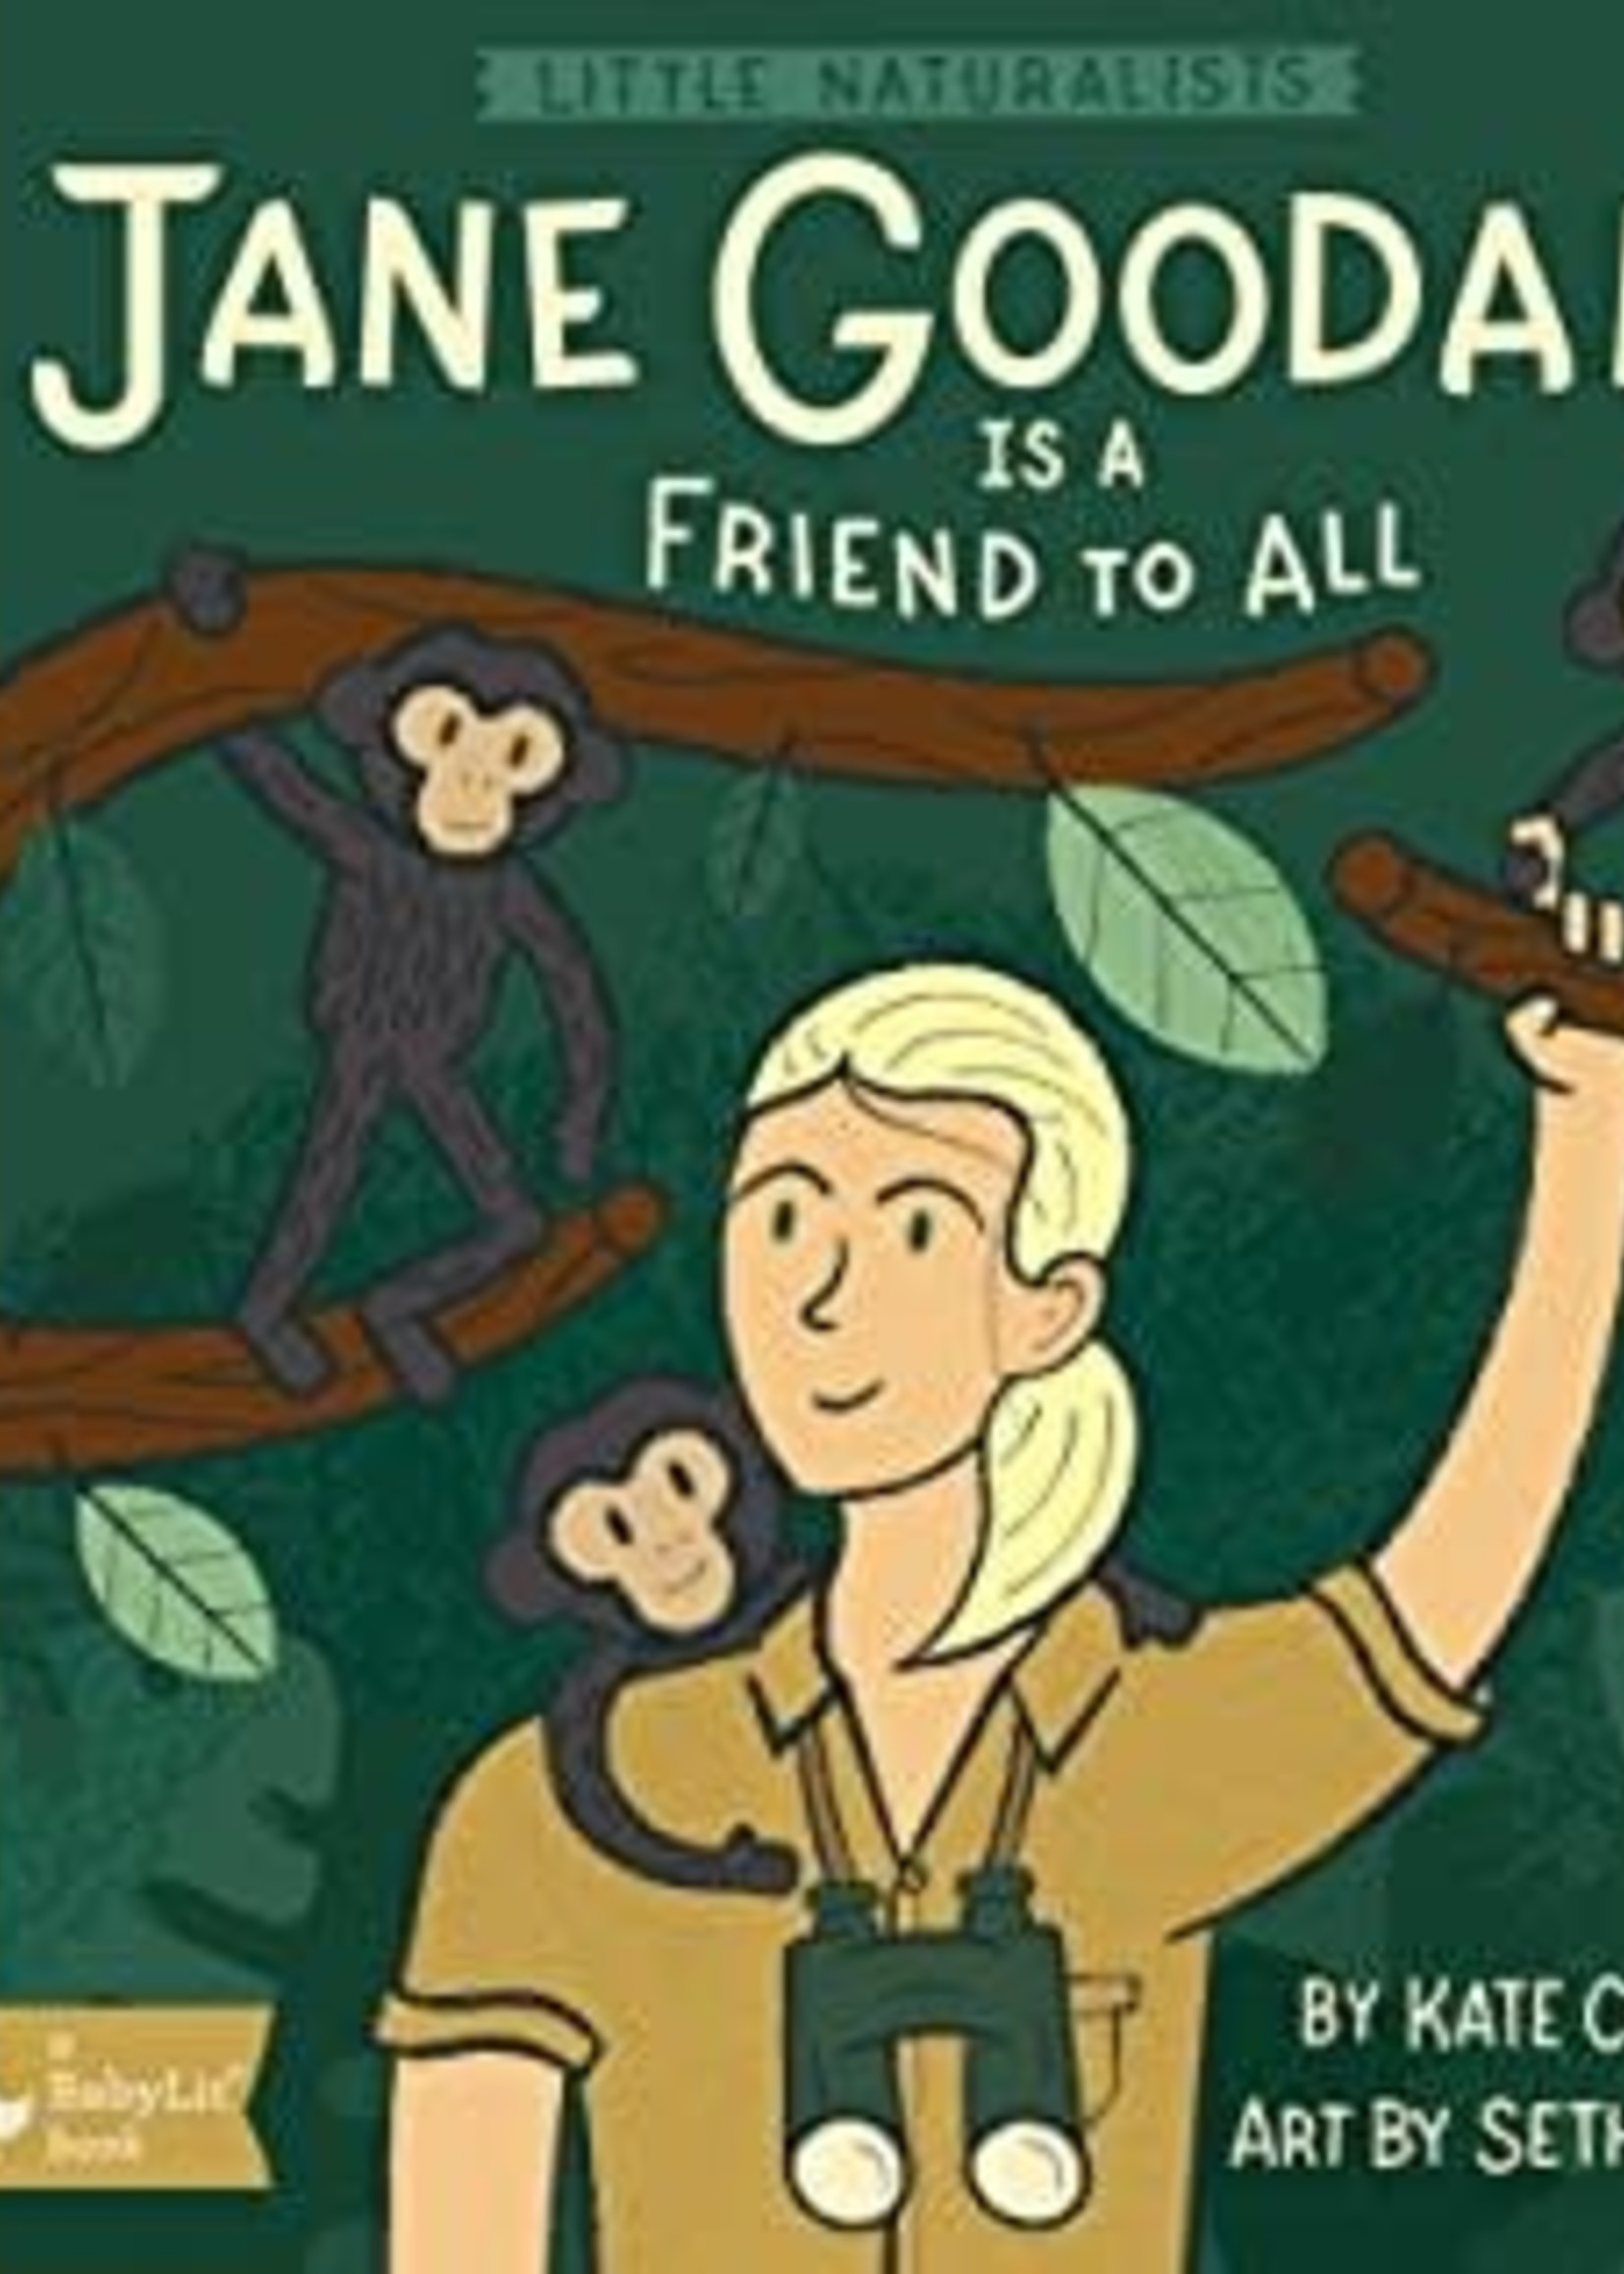 Little Naturalists: Jane Goodall Is a Friend to All by Kate Coombs,  Seth Lucas